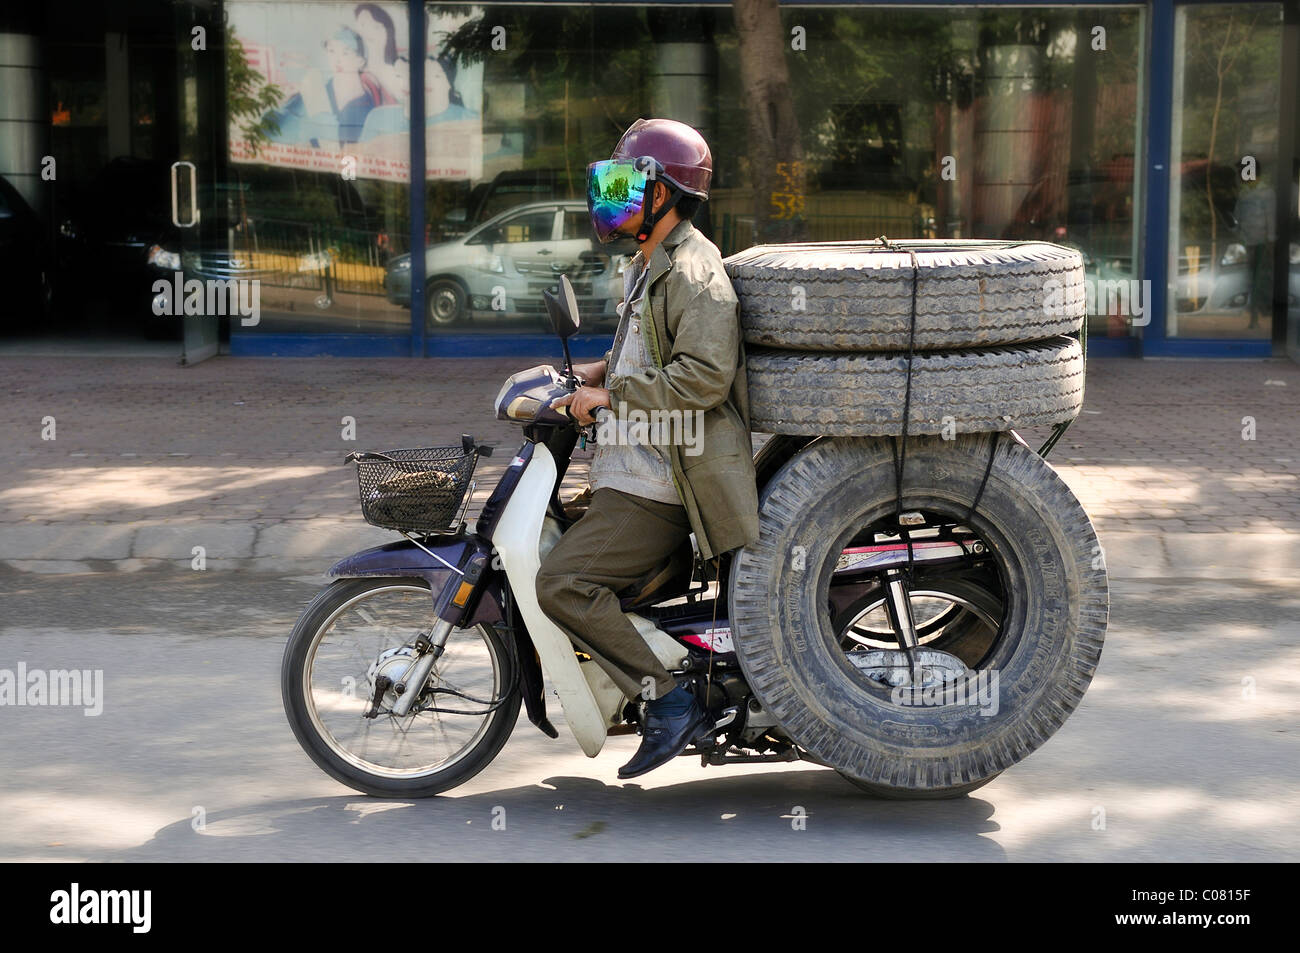 Scooter loaded with tires, Hanoi, Vietnam, Southeast Asia - Stock Image